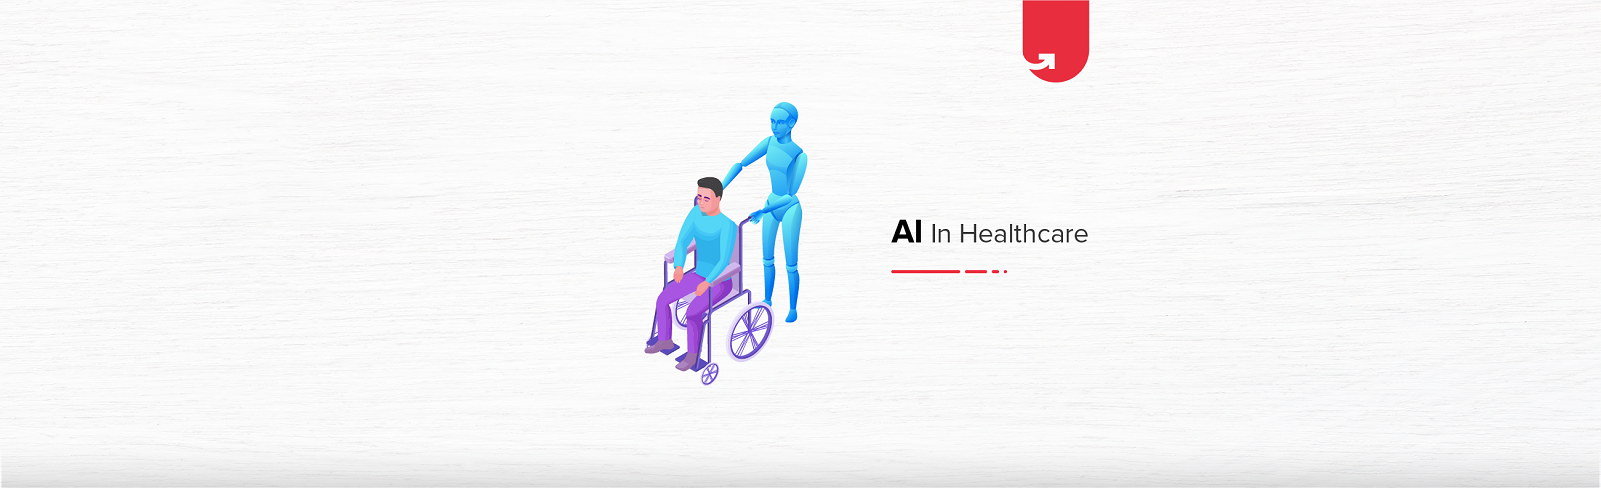 Artificial Intelligence in Healthcare: 6 Exciting Applications in 2021